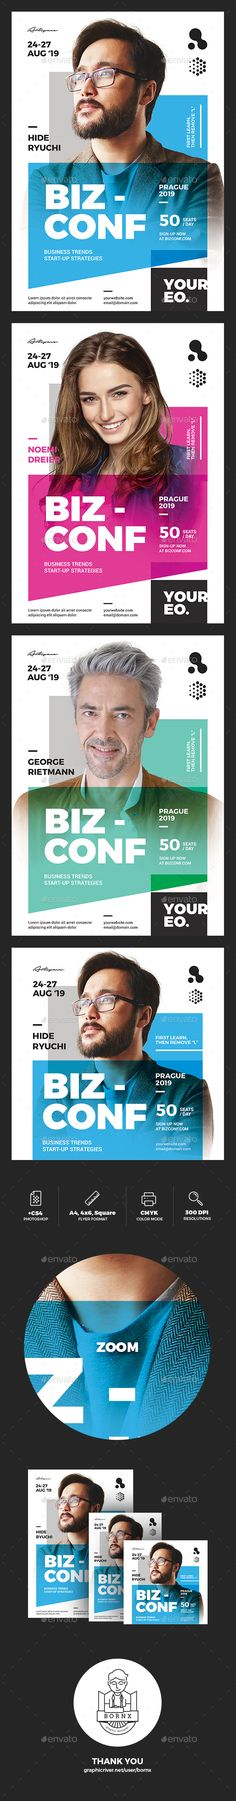 Modern seminar PSD flyer template for Photoshop available to download only on Bornx GraphicRiver design template store. #graphicriver #flyer #poster #banner #template #adobe #photoshop #graphic #layout #editorial #poster #corporate #event #seminar #conference #workshop #artist #designer #businessman #business #company #agency #bornx #bornxdesign